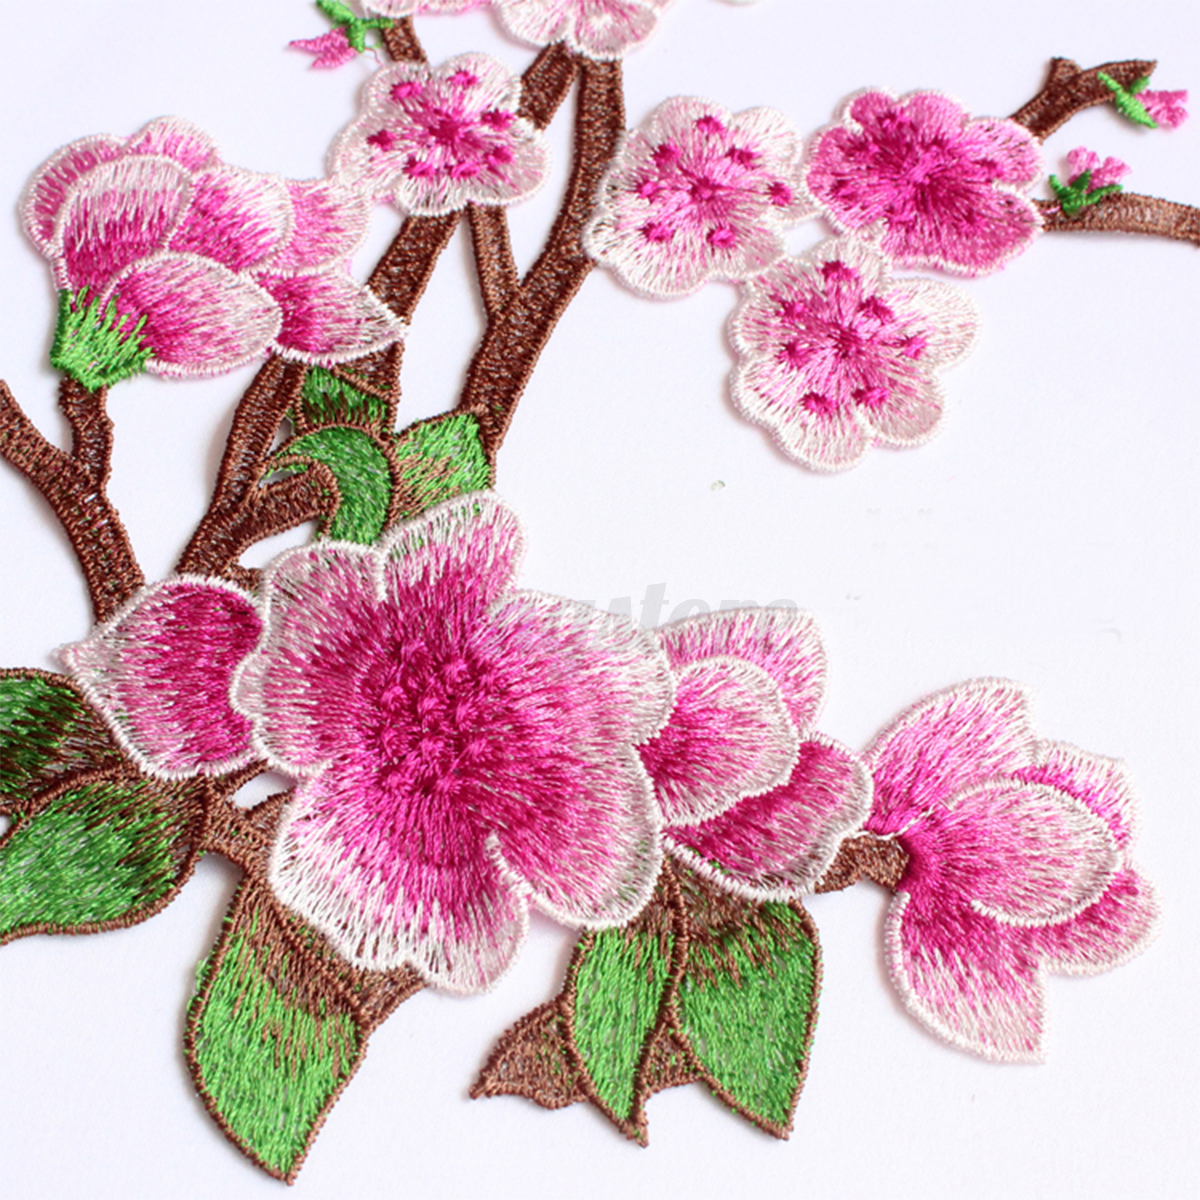 Plum blossom flower floral embroidery lace applique sewing